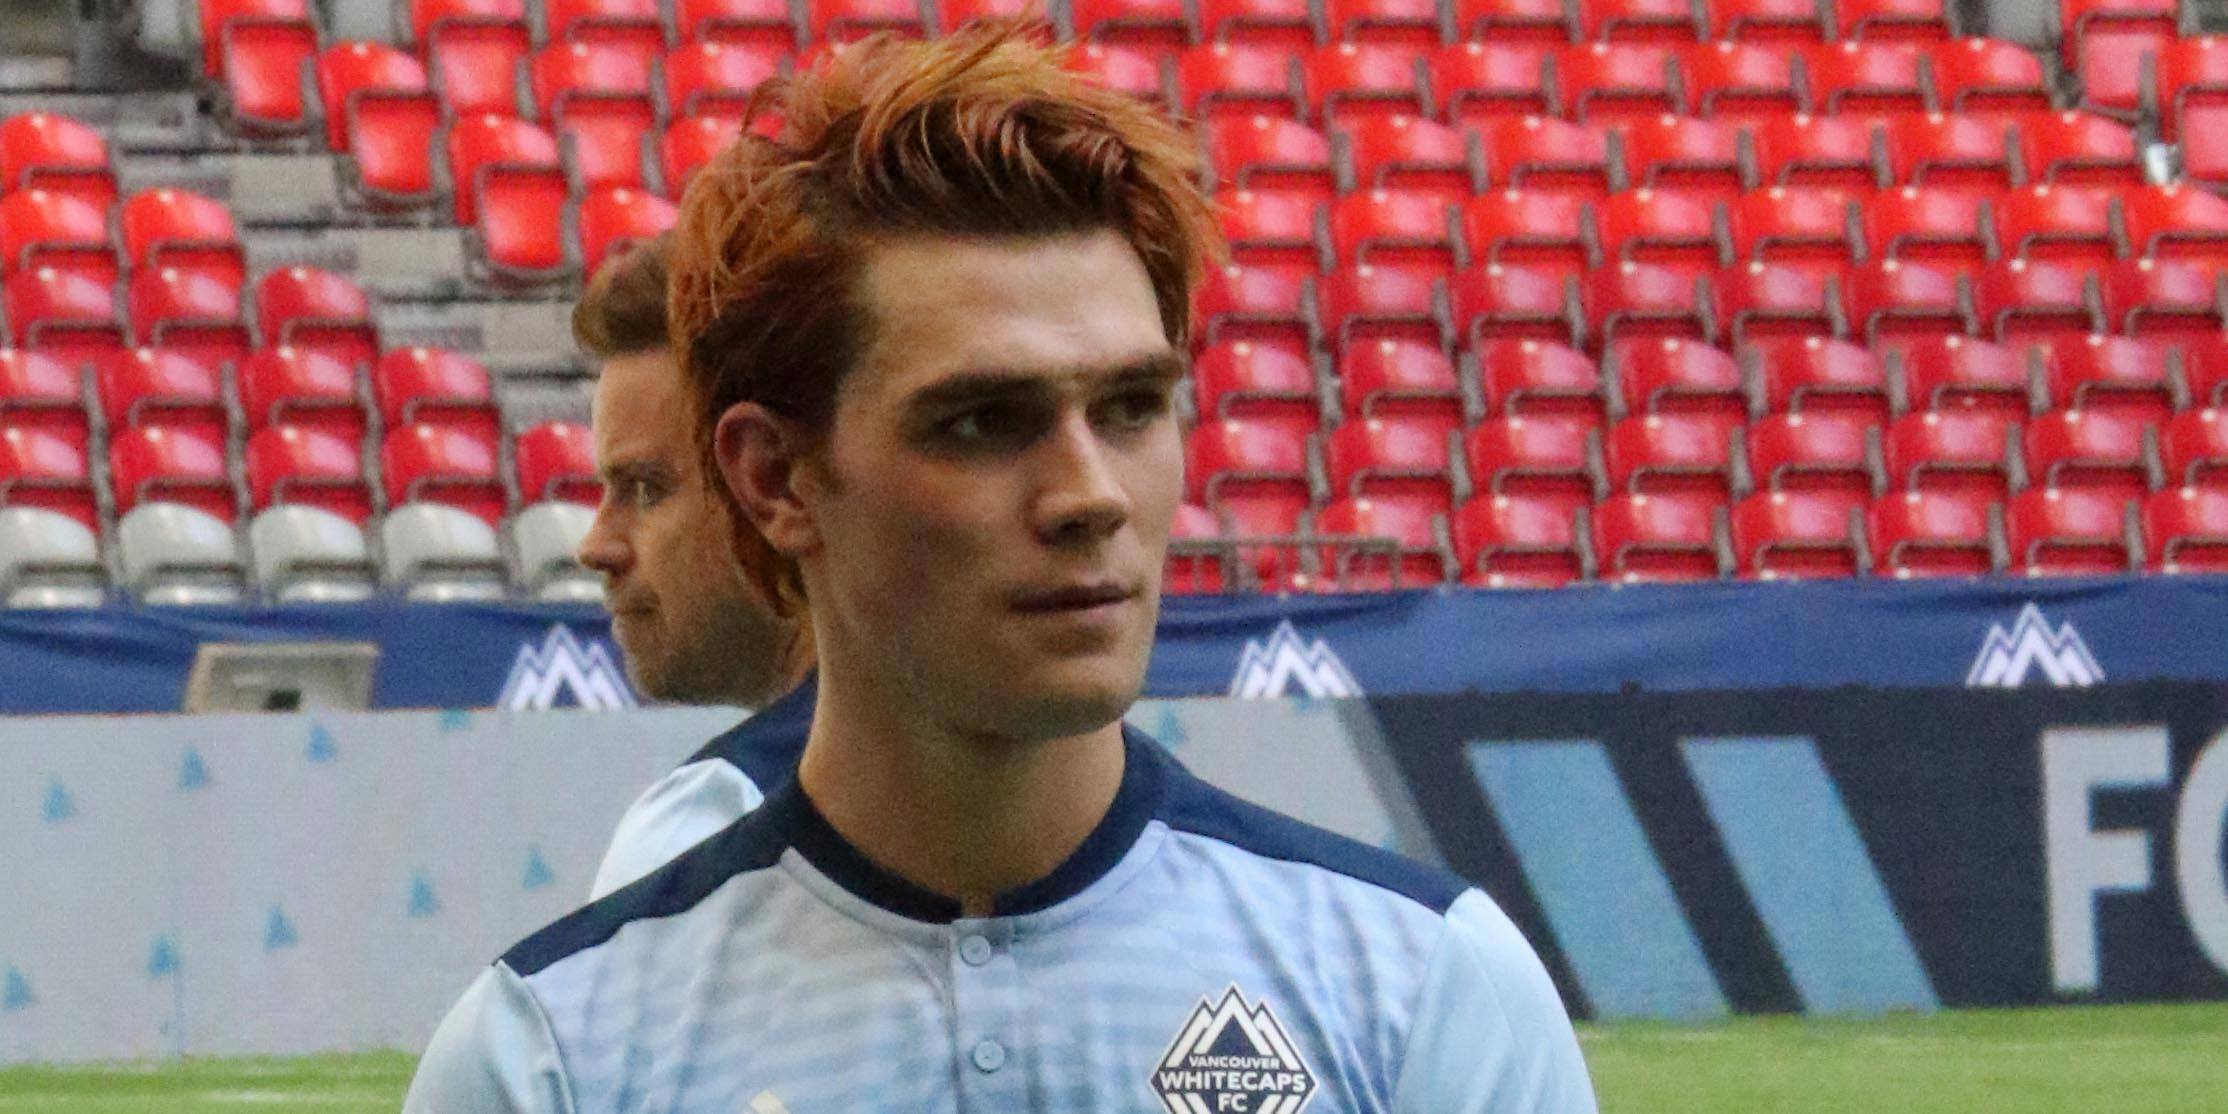 Riverdale's KJ Apa involved in Langley car crash after 16-hour day on the set